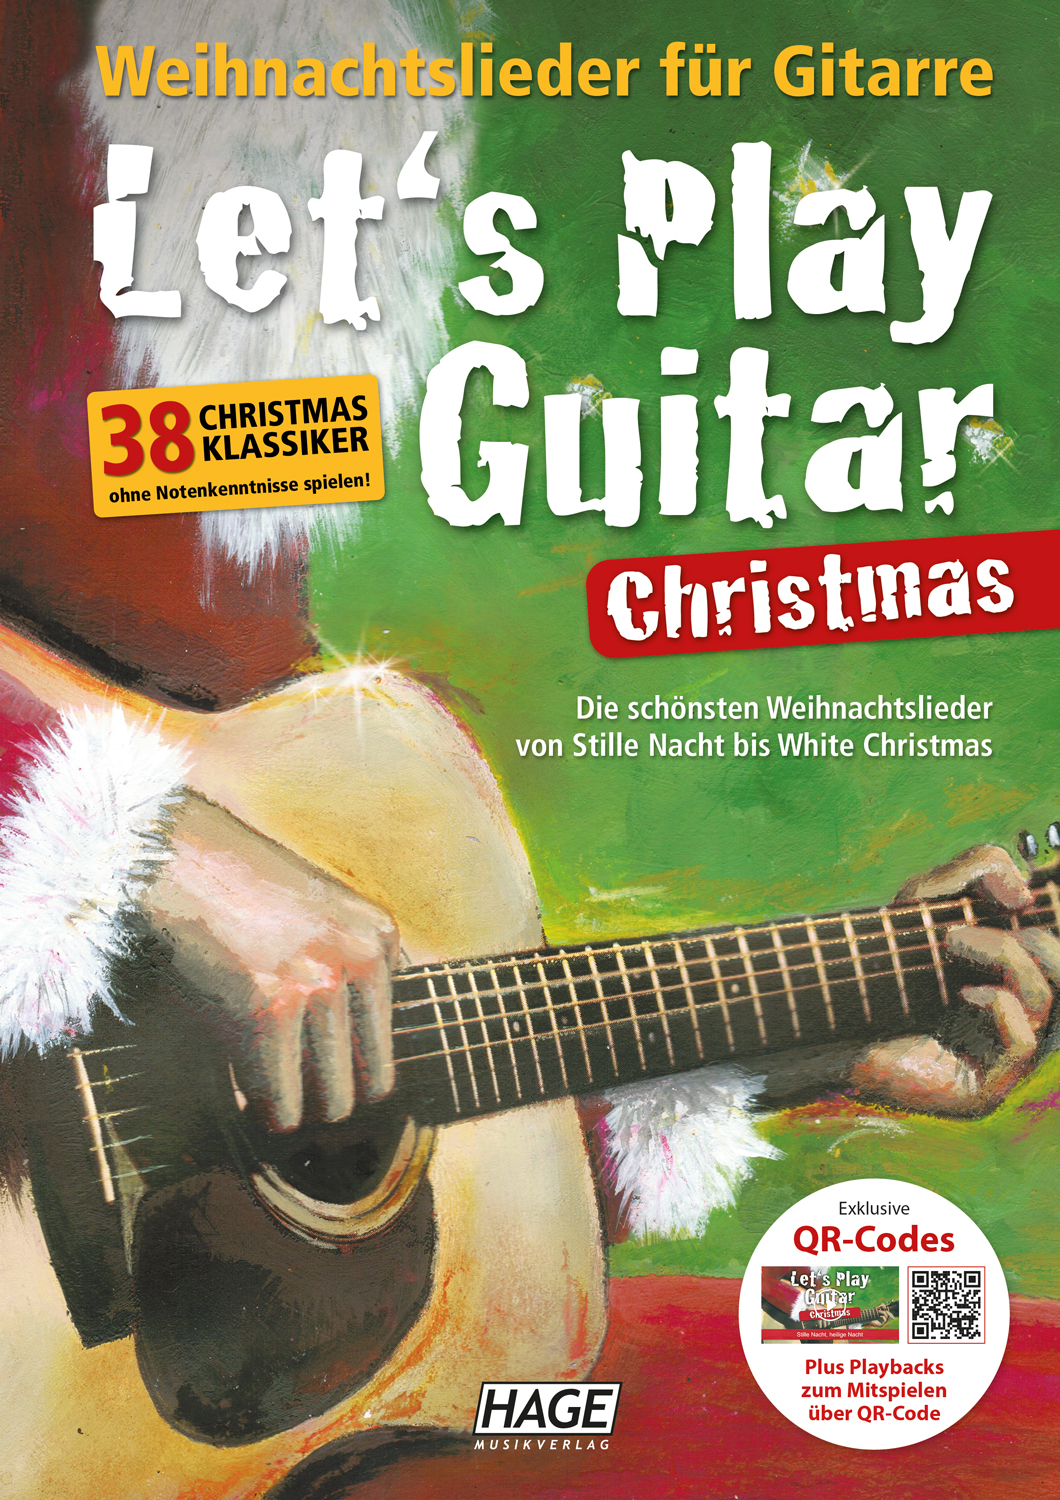 Let's Play Guitar Christmas (mit QR-Codes)